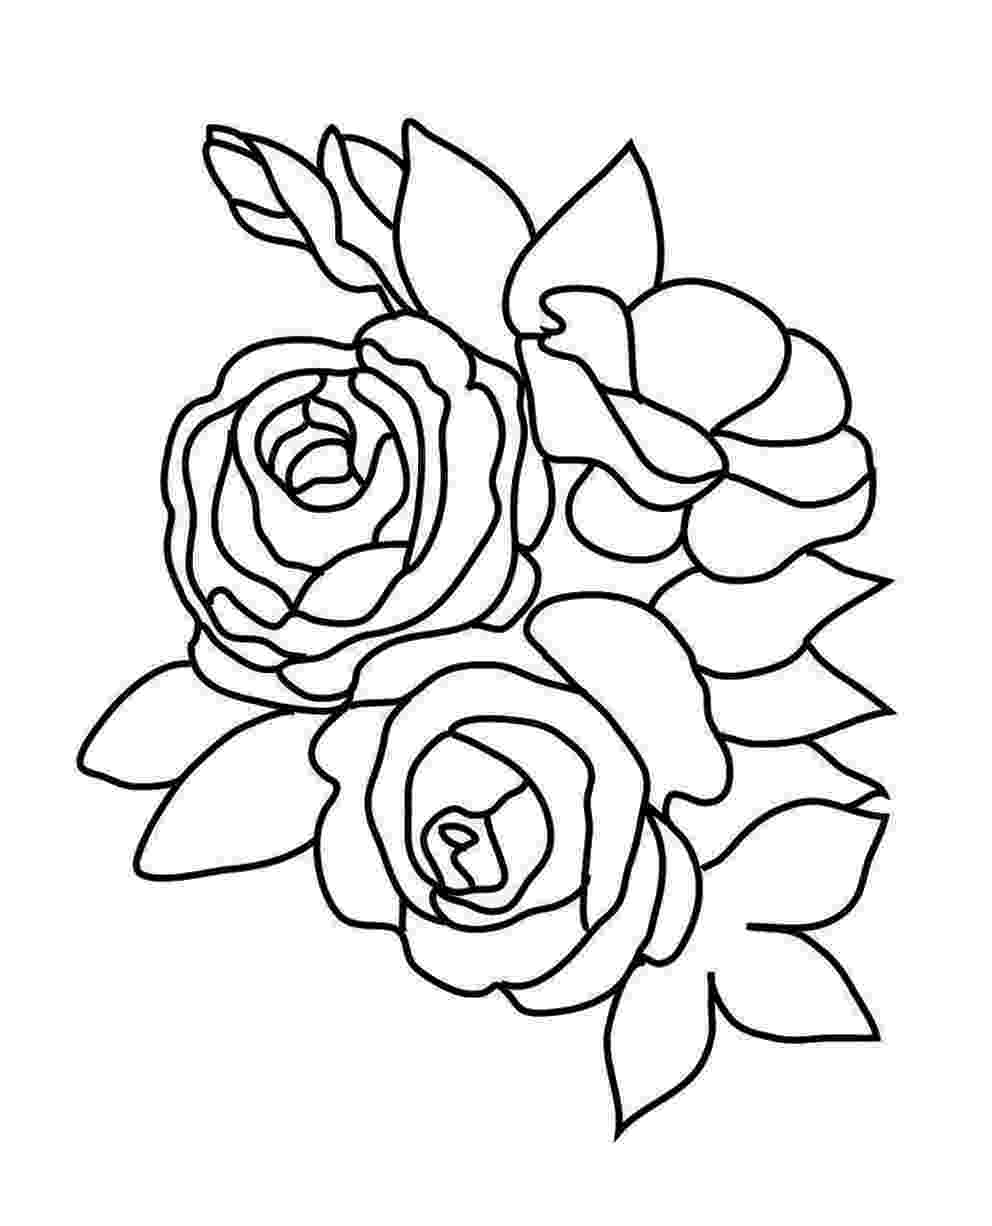 colouring pictures of roses rose and heart drawing rose coloring pages flower pictures colouring of roses